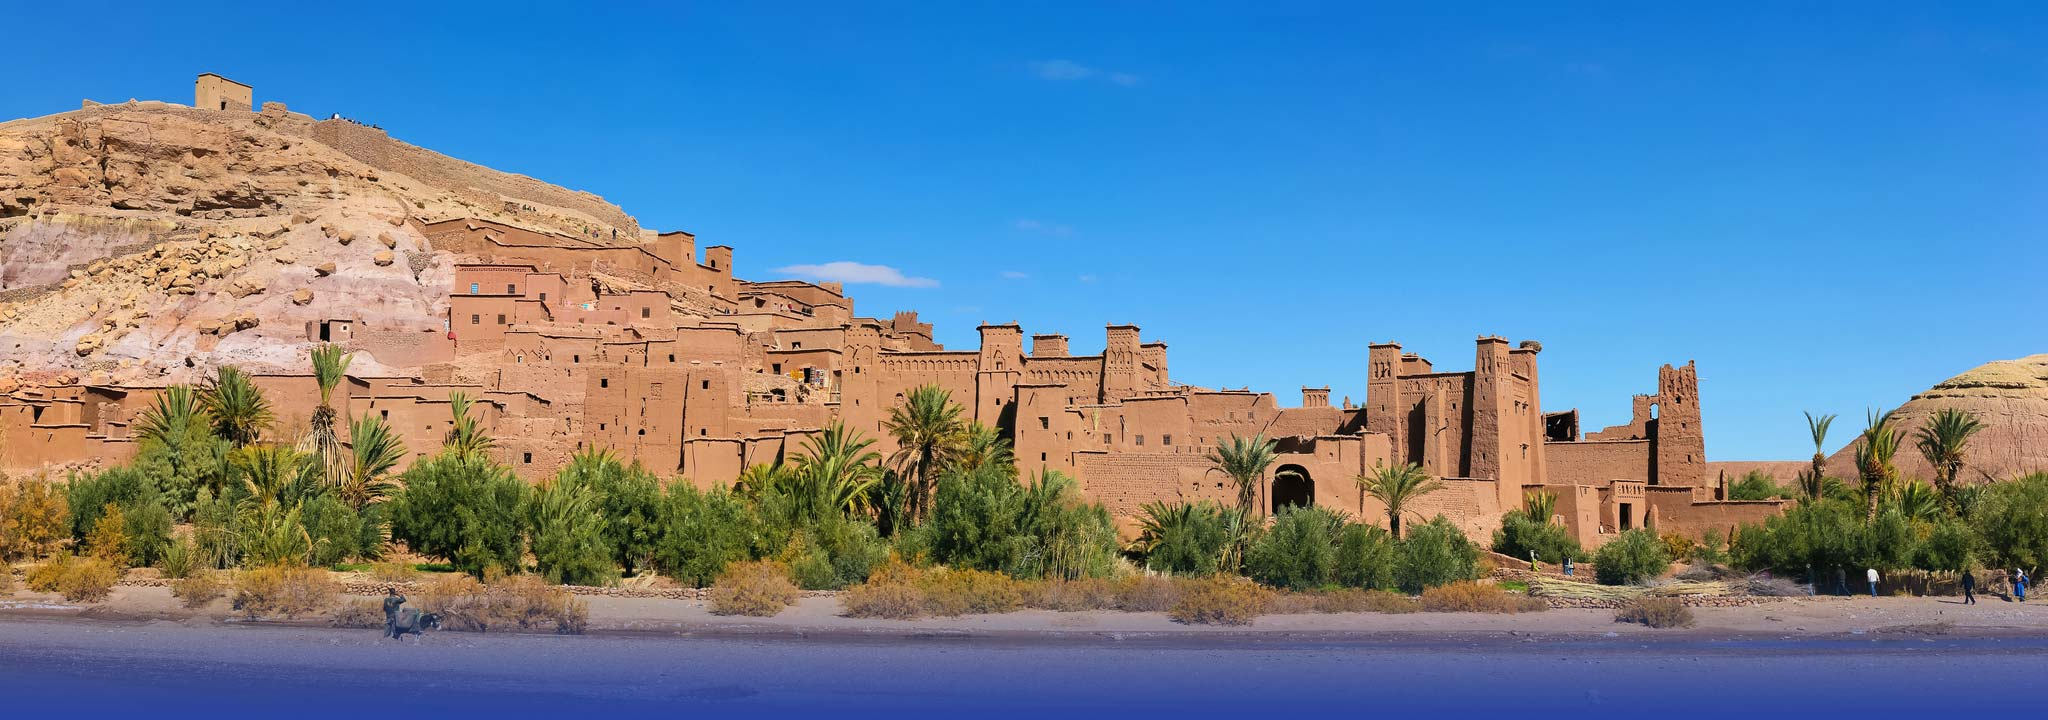 Aït-Ben-Haddou – UNESCO World Heritage Site since 1987